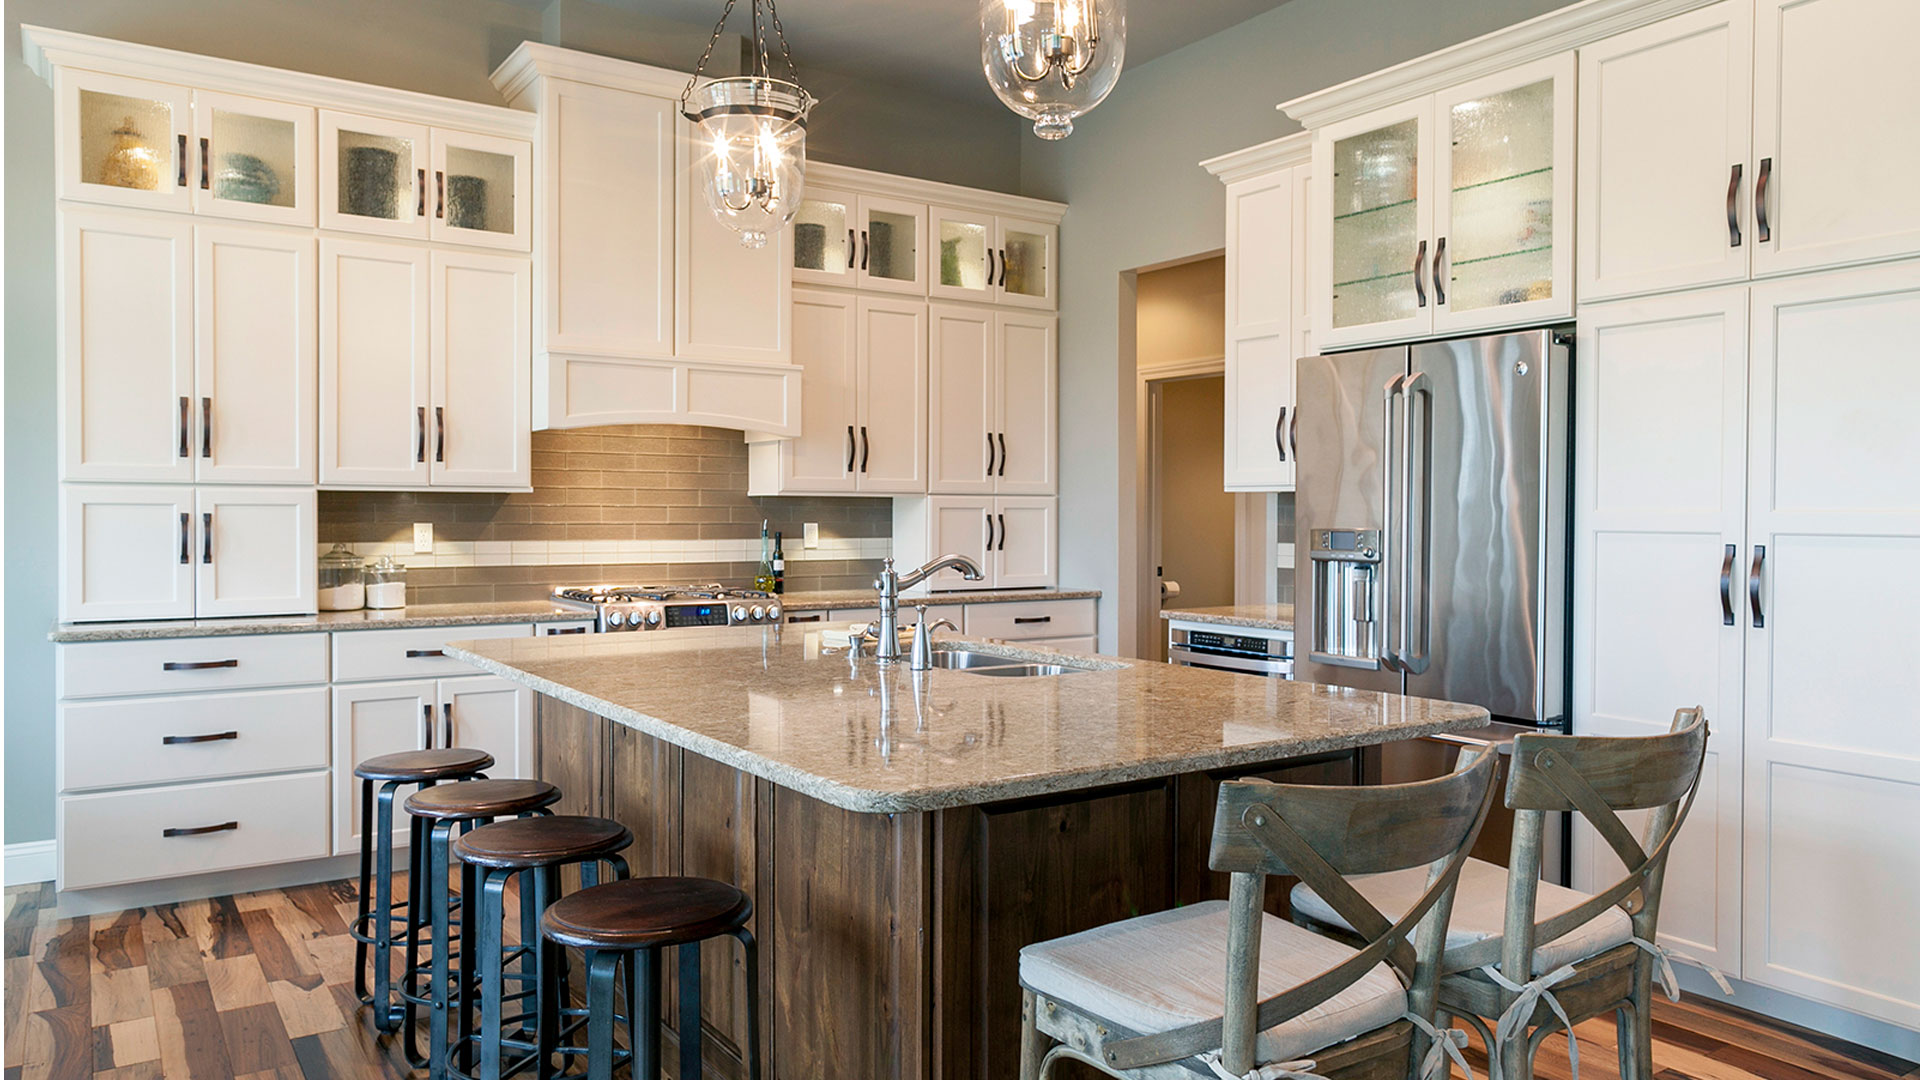 Custom Kitchen Cabinets for your Home Remodeling project in Lecanto, FL